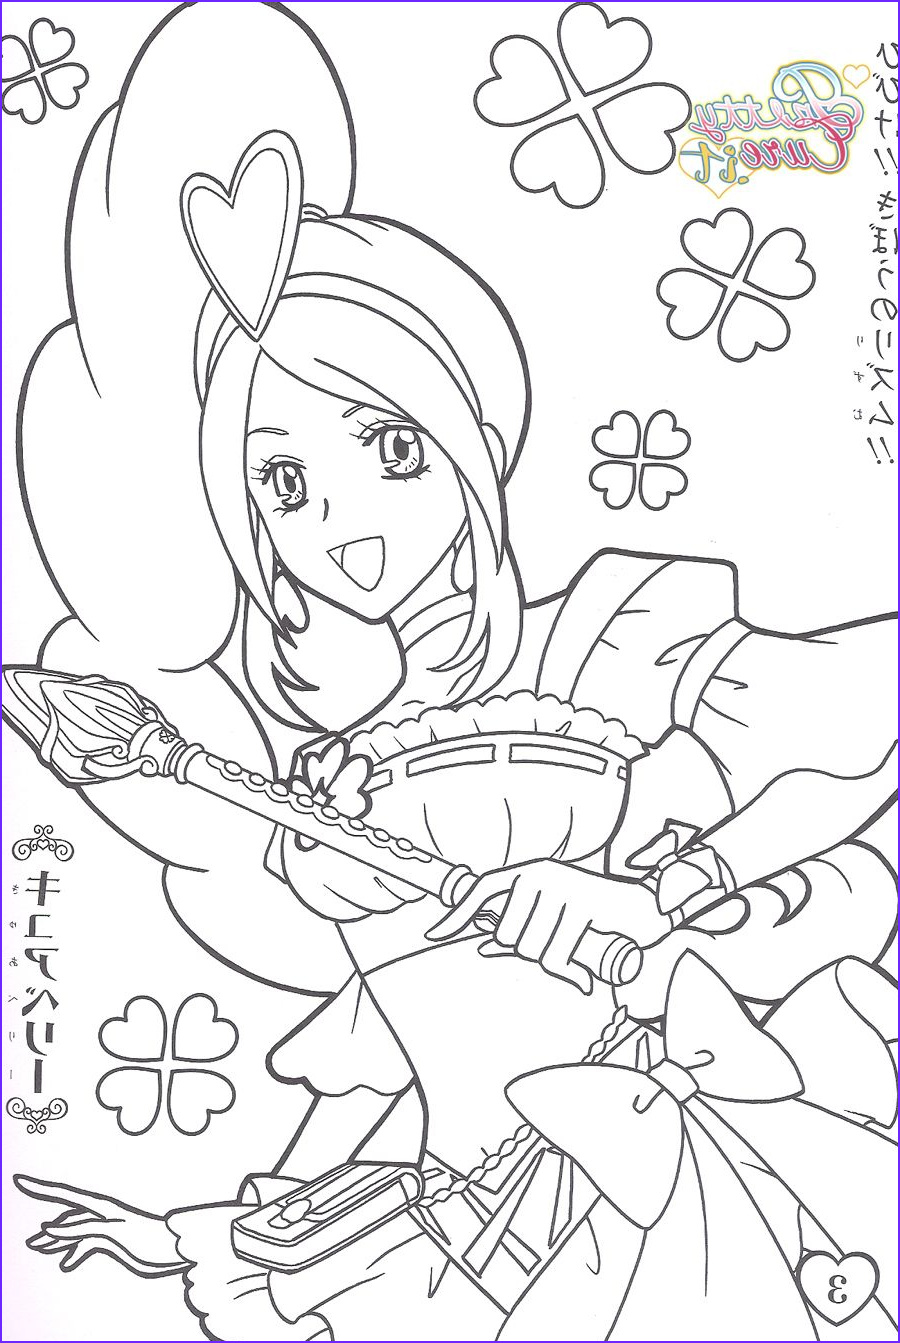 Precure Coloring Page Cool Photos Fresh Precure Coloring Pages Precure